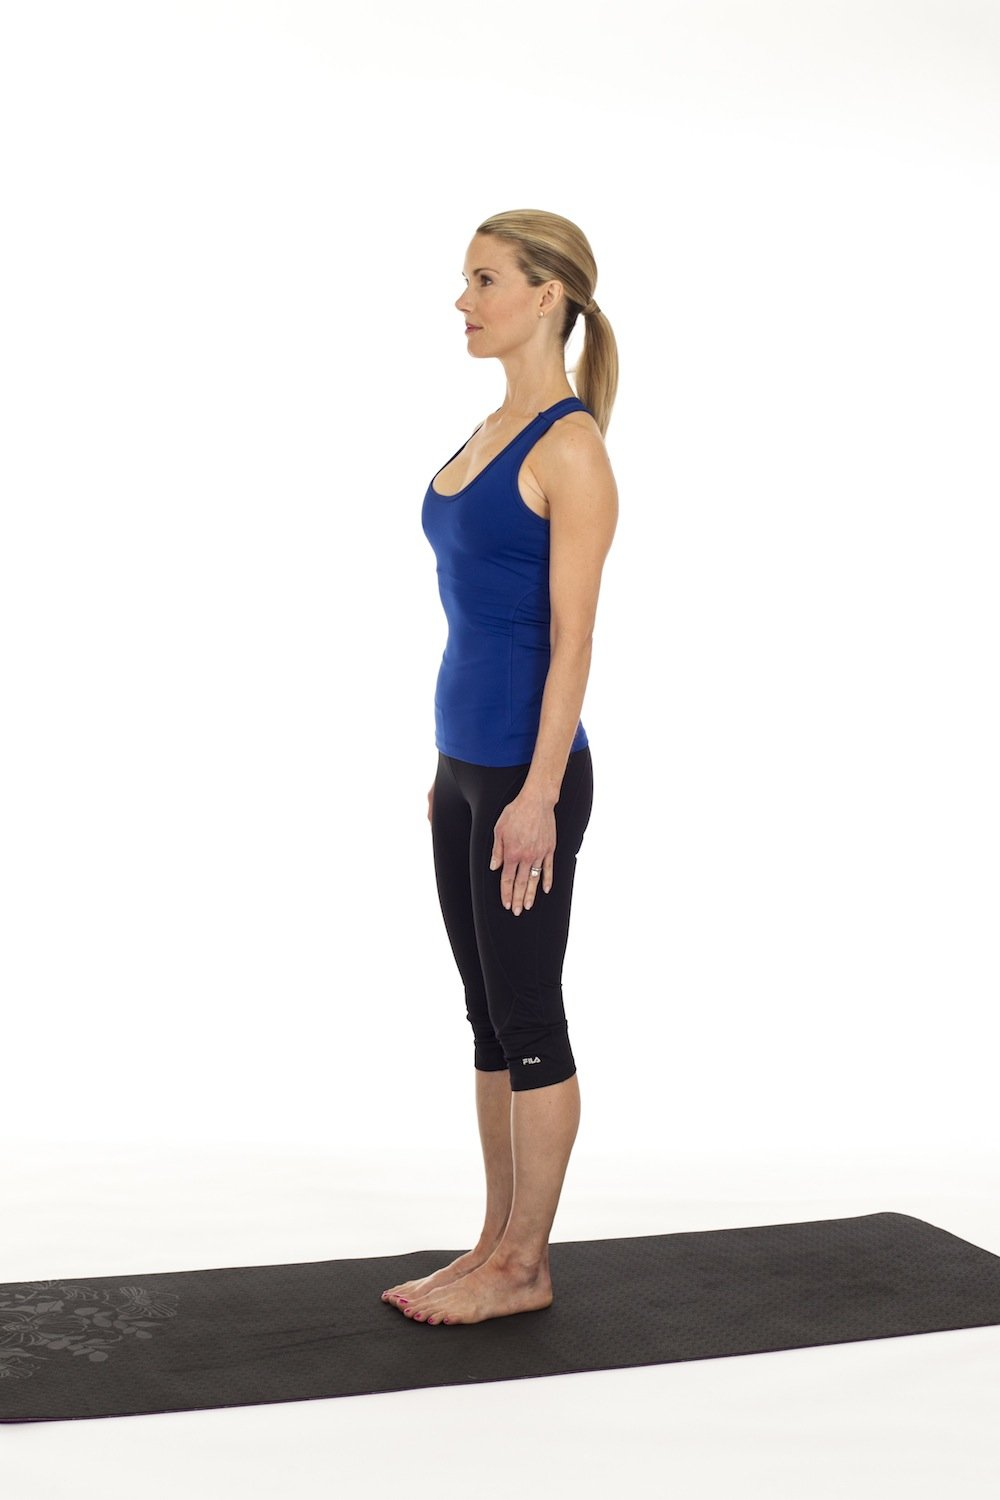 Perfect Your Posture - Kristin McGee